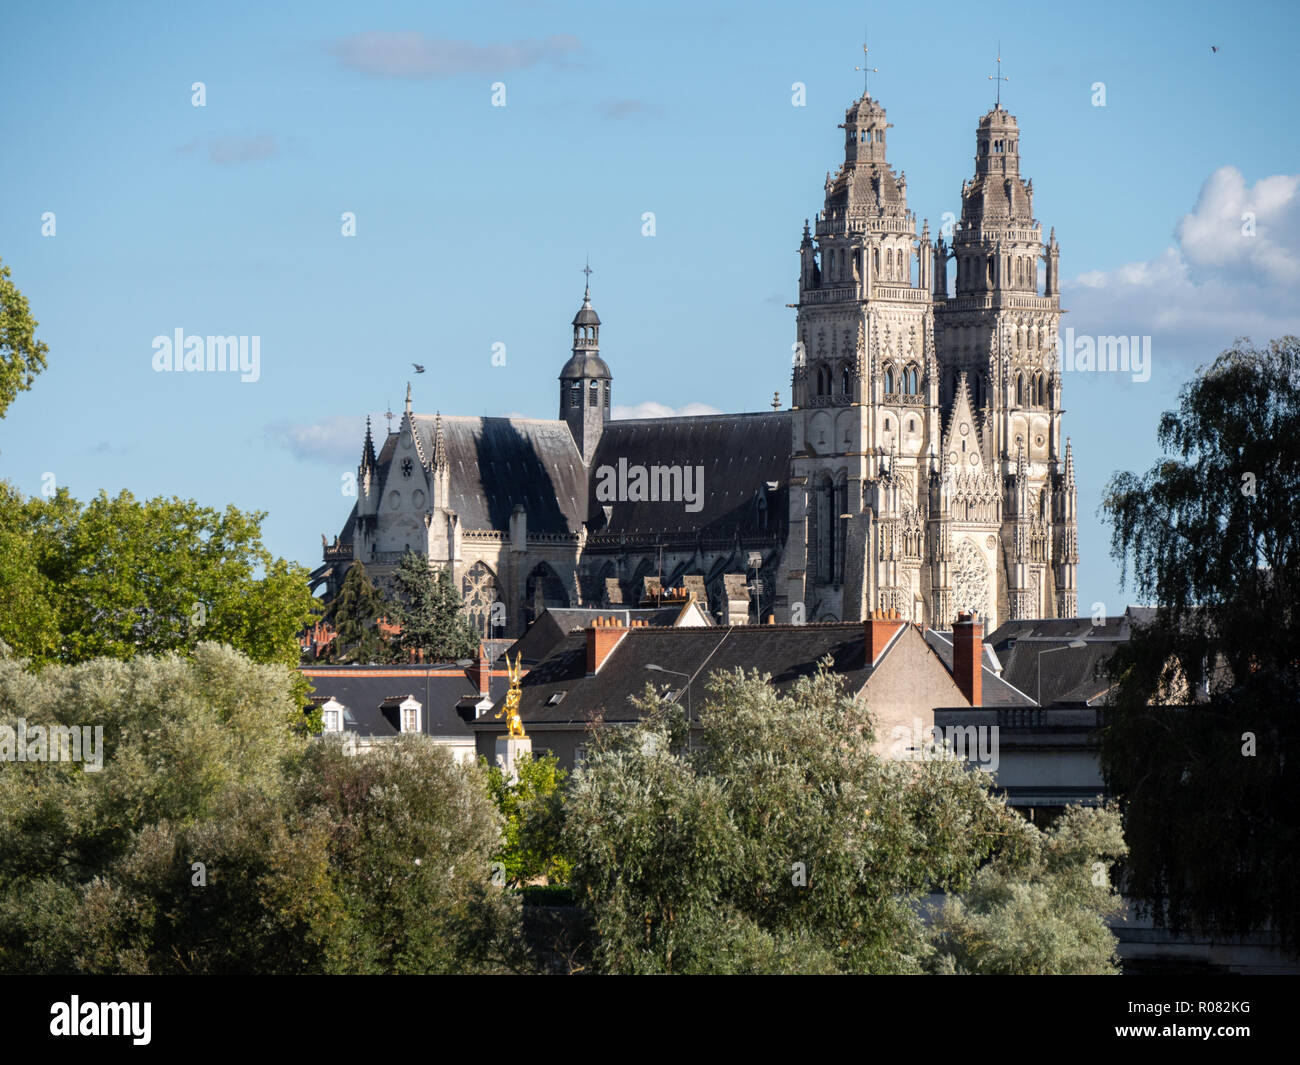 Tours Cathedral is a Roman Catholic church located in Tours, Indre-et-Loire, France. Its name in french is Cathédrale Saint-Gatien de Tours. It is ded Stock Photo